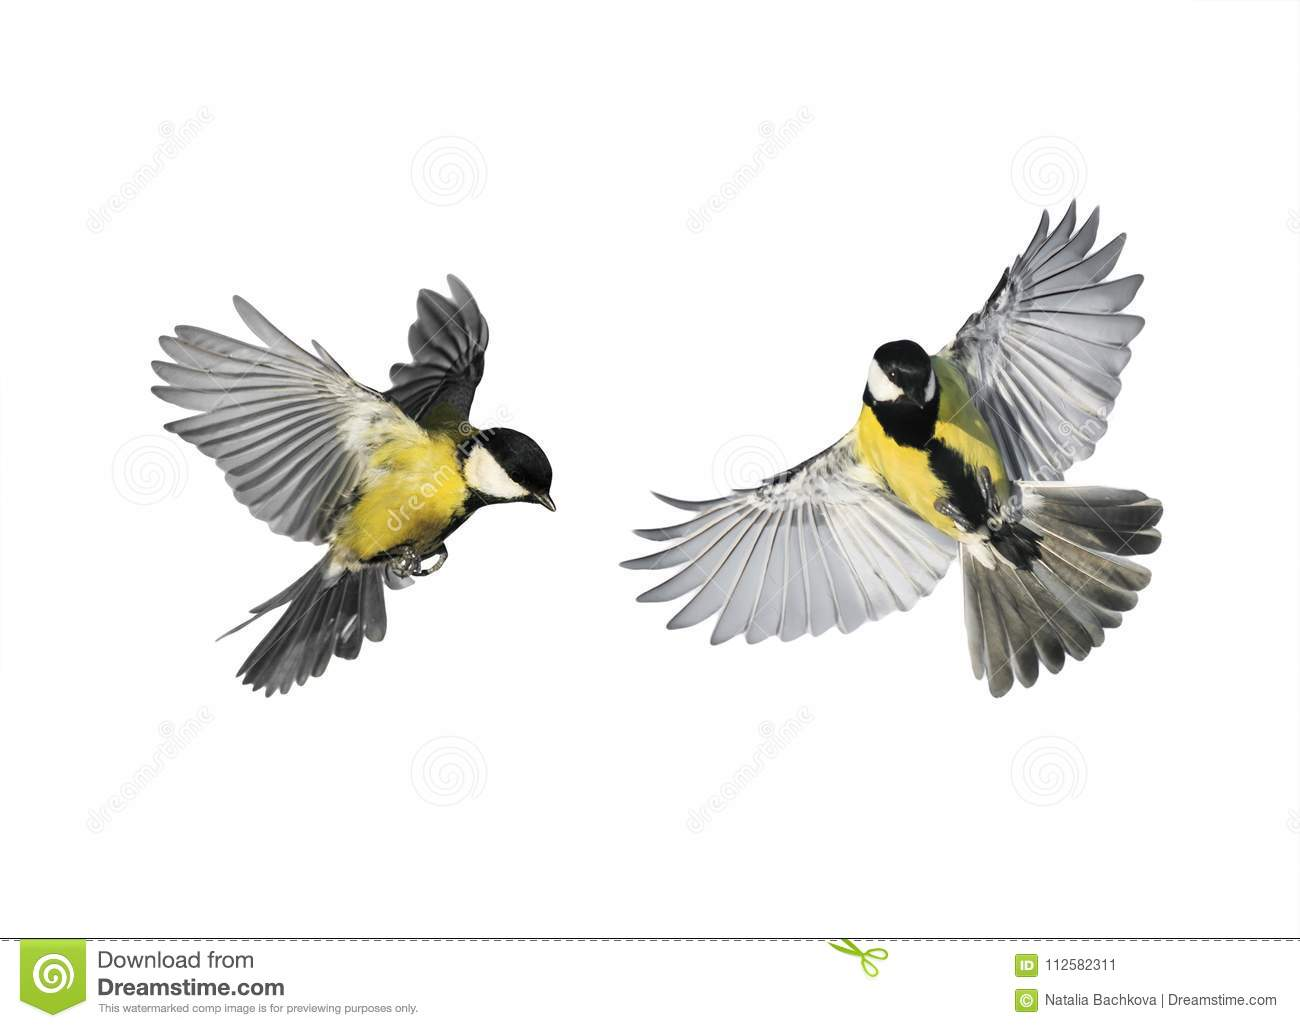 A couple of little birds chickadees flying toward spread its win